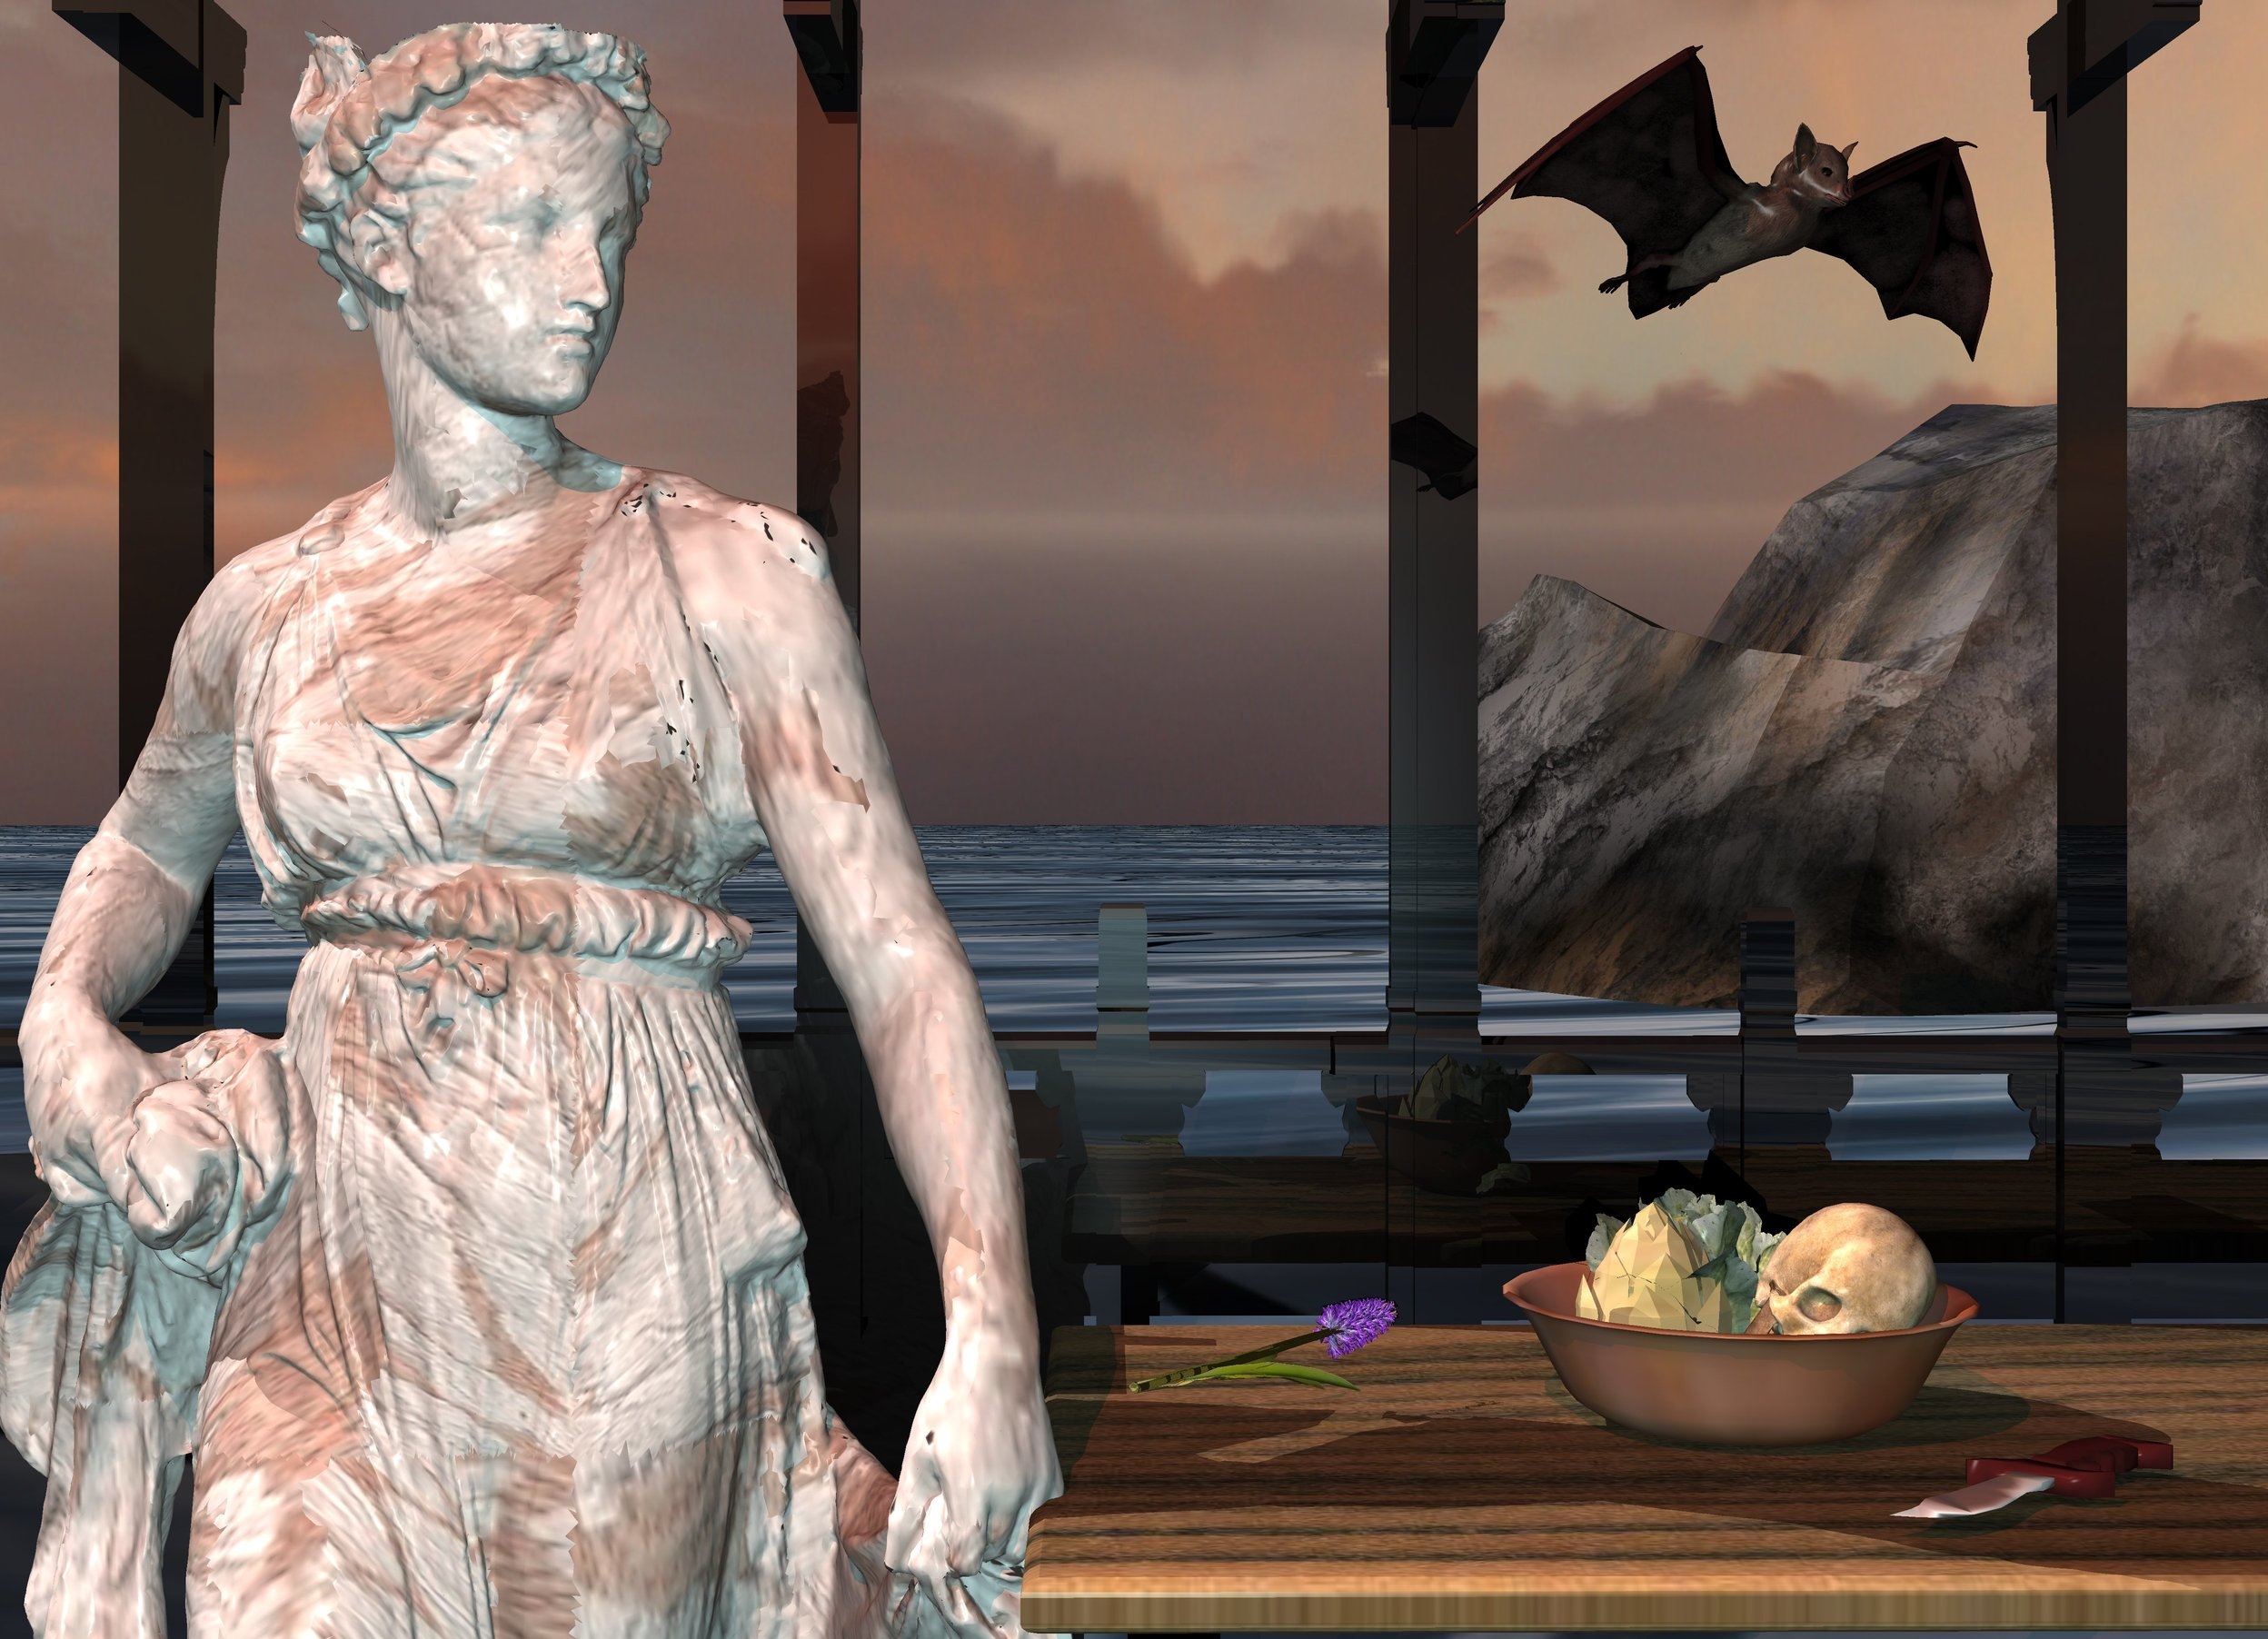 Input text: matte [texture] statue is 0.1 foot in ground. big bat is 0.5 foot right of statue and 5.3 feet above ground.  bat is facing southeast. 3 foot tall table is -0.1 foot right of statue. table's surface is [wood].  1 foot wide [texture] bowl is on table and -2 feet to left. 0.8 foot tall flower is 0.1 foot left of bowl. flower is facing down. flower is facing northeast.  0.5 foot tall skull is 4 inch in bowl and -0.6 foot to right. skull is leaning -45 degrees to ground. 4 foot tall and 4 foot wide 25% reflective black first balcony is 1 inch behind table and -0.2 foot above table. 4 foot tall and 4 foot wide 25% reflective black second balcony is -5 inch left of first balcony. 4 foot tall and 4 foot wide 25% reflective black third balcony is -5 inch left of second balcony. ground is 100 foot wide  water. 3.2  foot wide cube is 1 foot behind statue and -2.5 foot to left. cube is 25% reflective black. grass artichoke is -1 inch left of skull. 0.6 foot tall and 0.6 foot wide  cabbage is -4 inch left of skull and -6 inch to back. 0.8 foot tall buck knife is -2 inch in front of bowl and -6 inch to right. knife is facing down. knife is facing southwest. knife's handle is brown. 20 foot long rock is 50 foot behind table and 5 foot in ground. rock is 2 feet to right. rock is facing back.  camera light is powder blue. mahogany light is 3 feet in front of statue and 7 feet above ground. light is facing bat